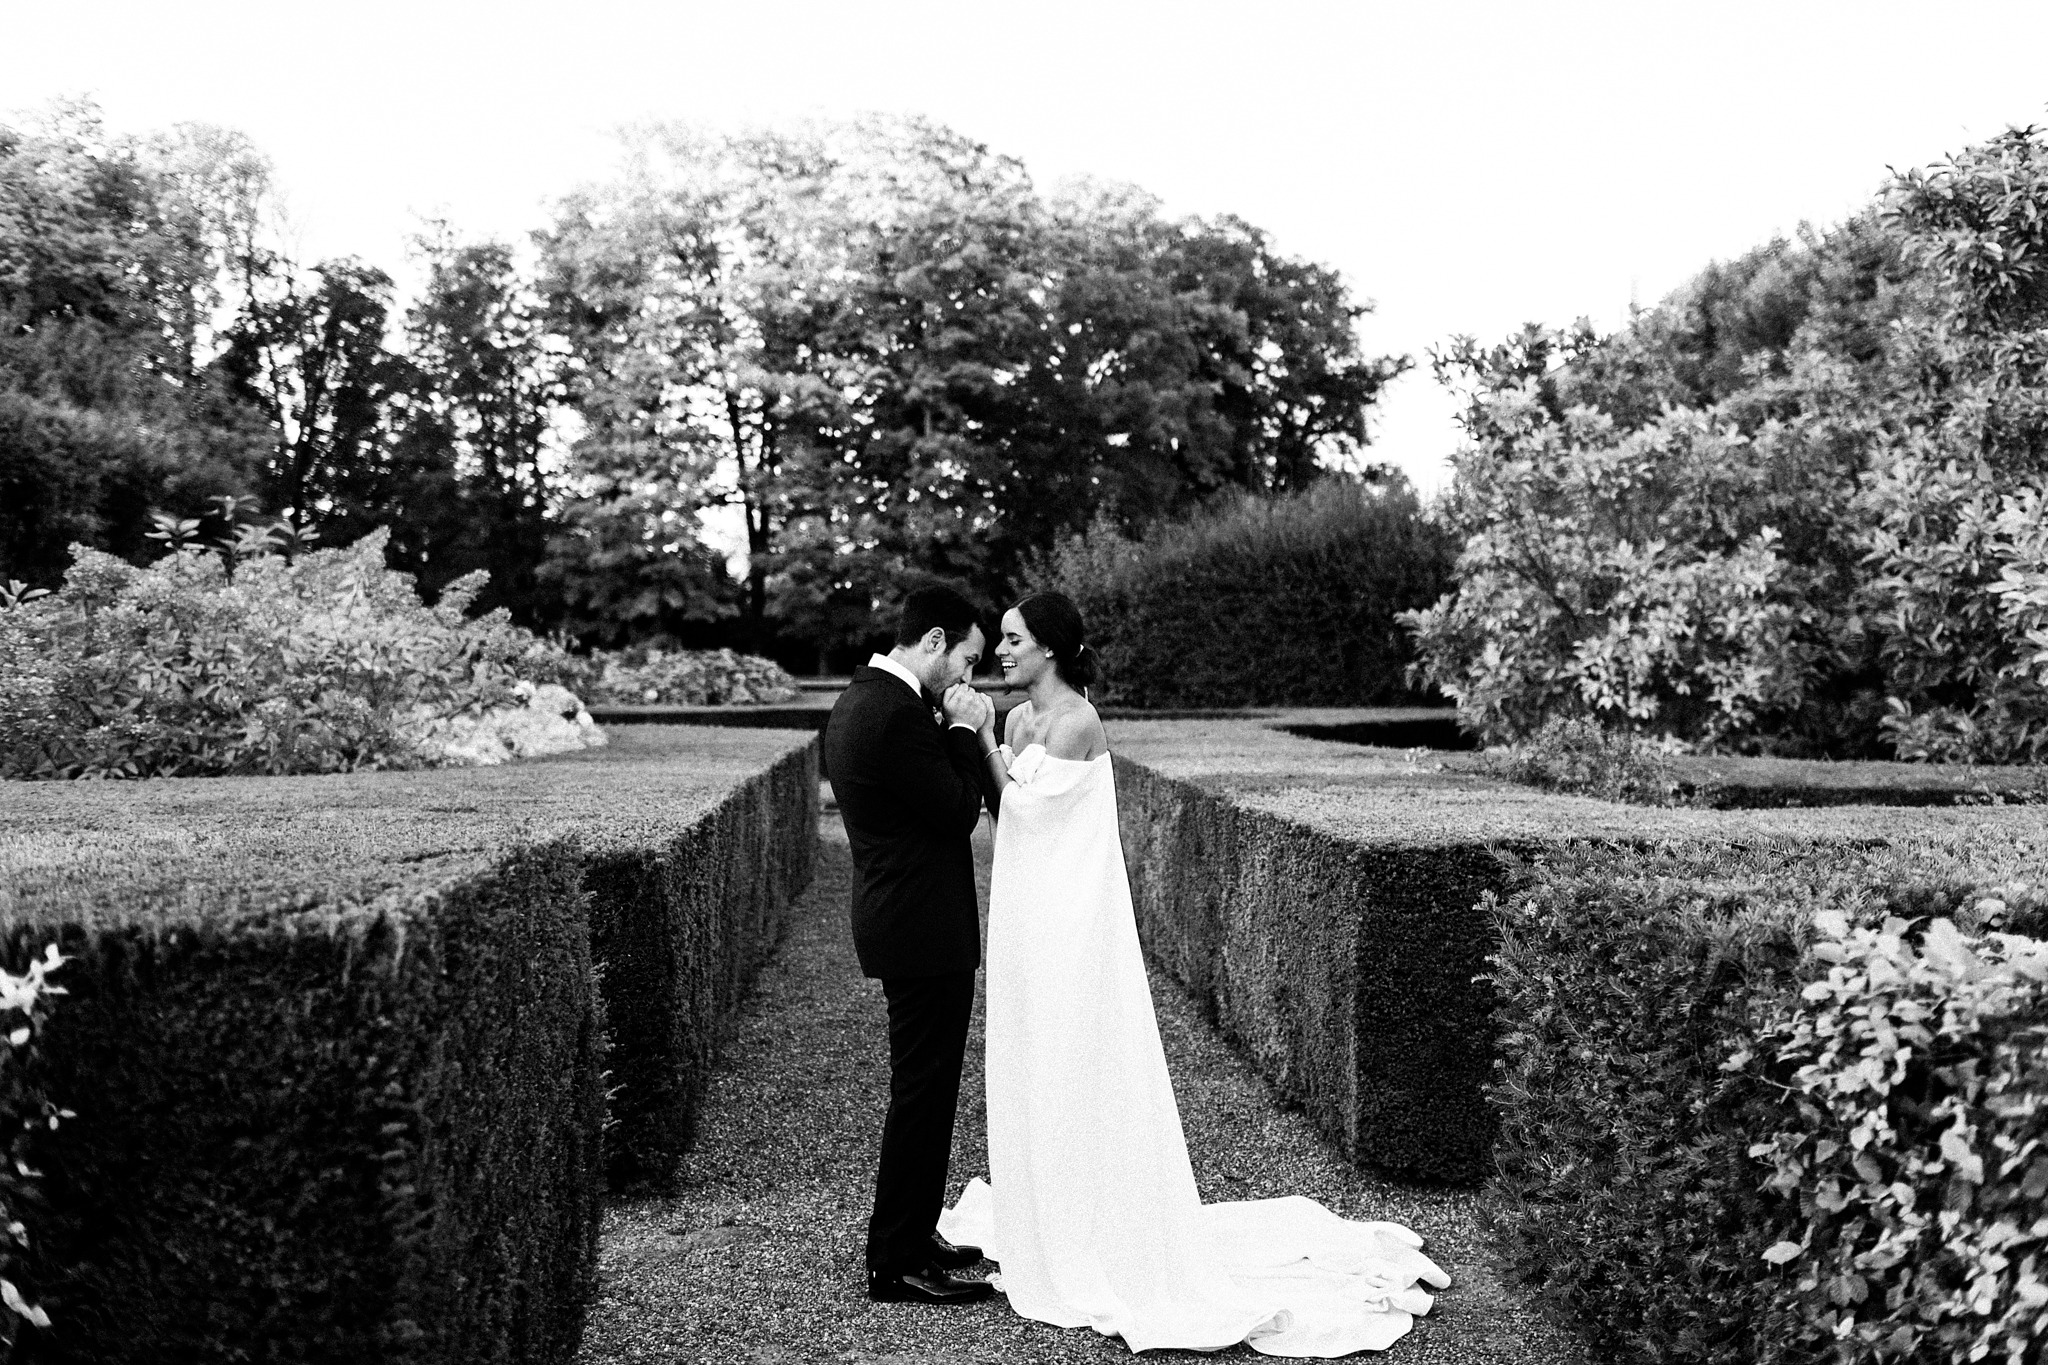 chateau-wedding-france-chanel-eric-as-seen-on-vogue-with-sarah-falugo-photographer_0174